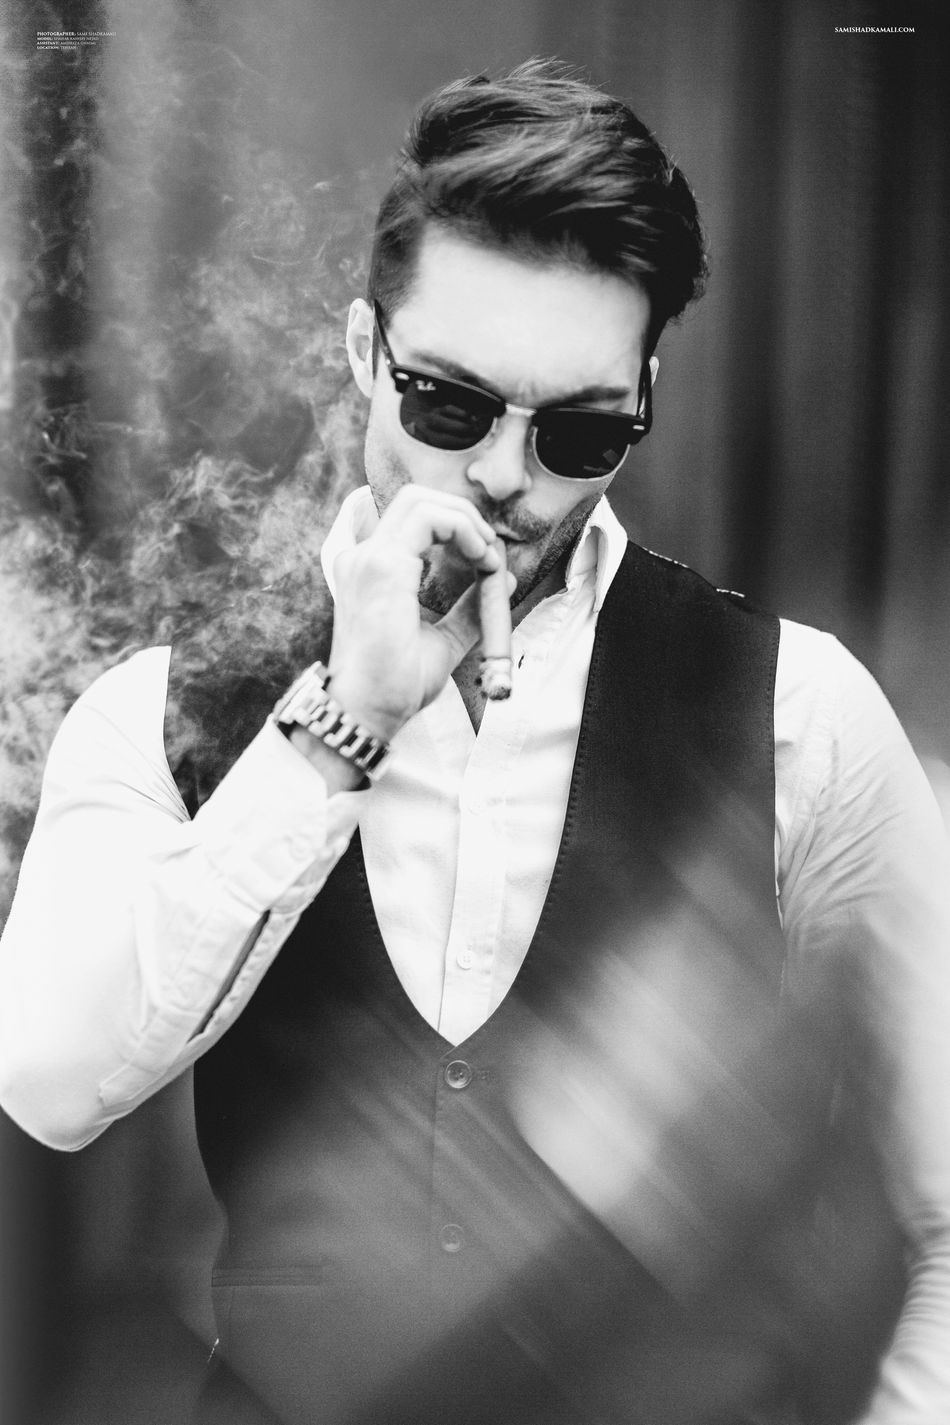 Modeling Male Malemodel  Model Black & White Fashion Photography Bow Tie Sunglasses One Person Reflection Shahabkashefi Iranian Persian Vogue GQ Style Fashion